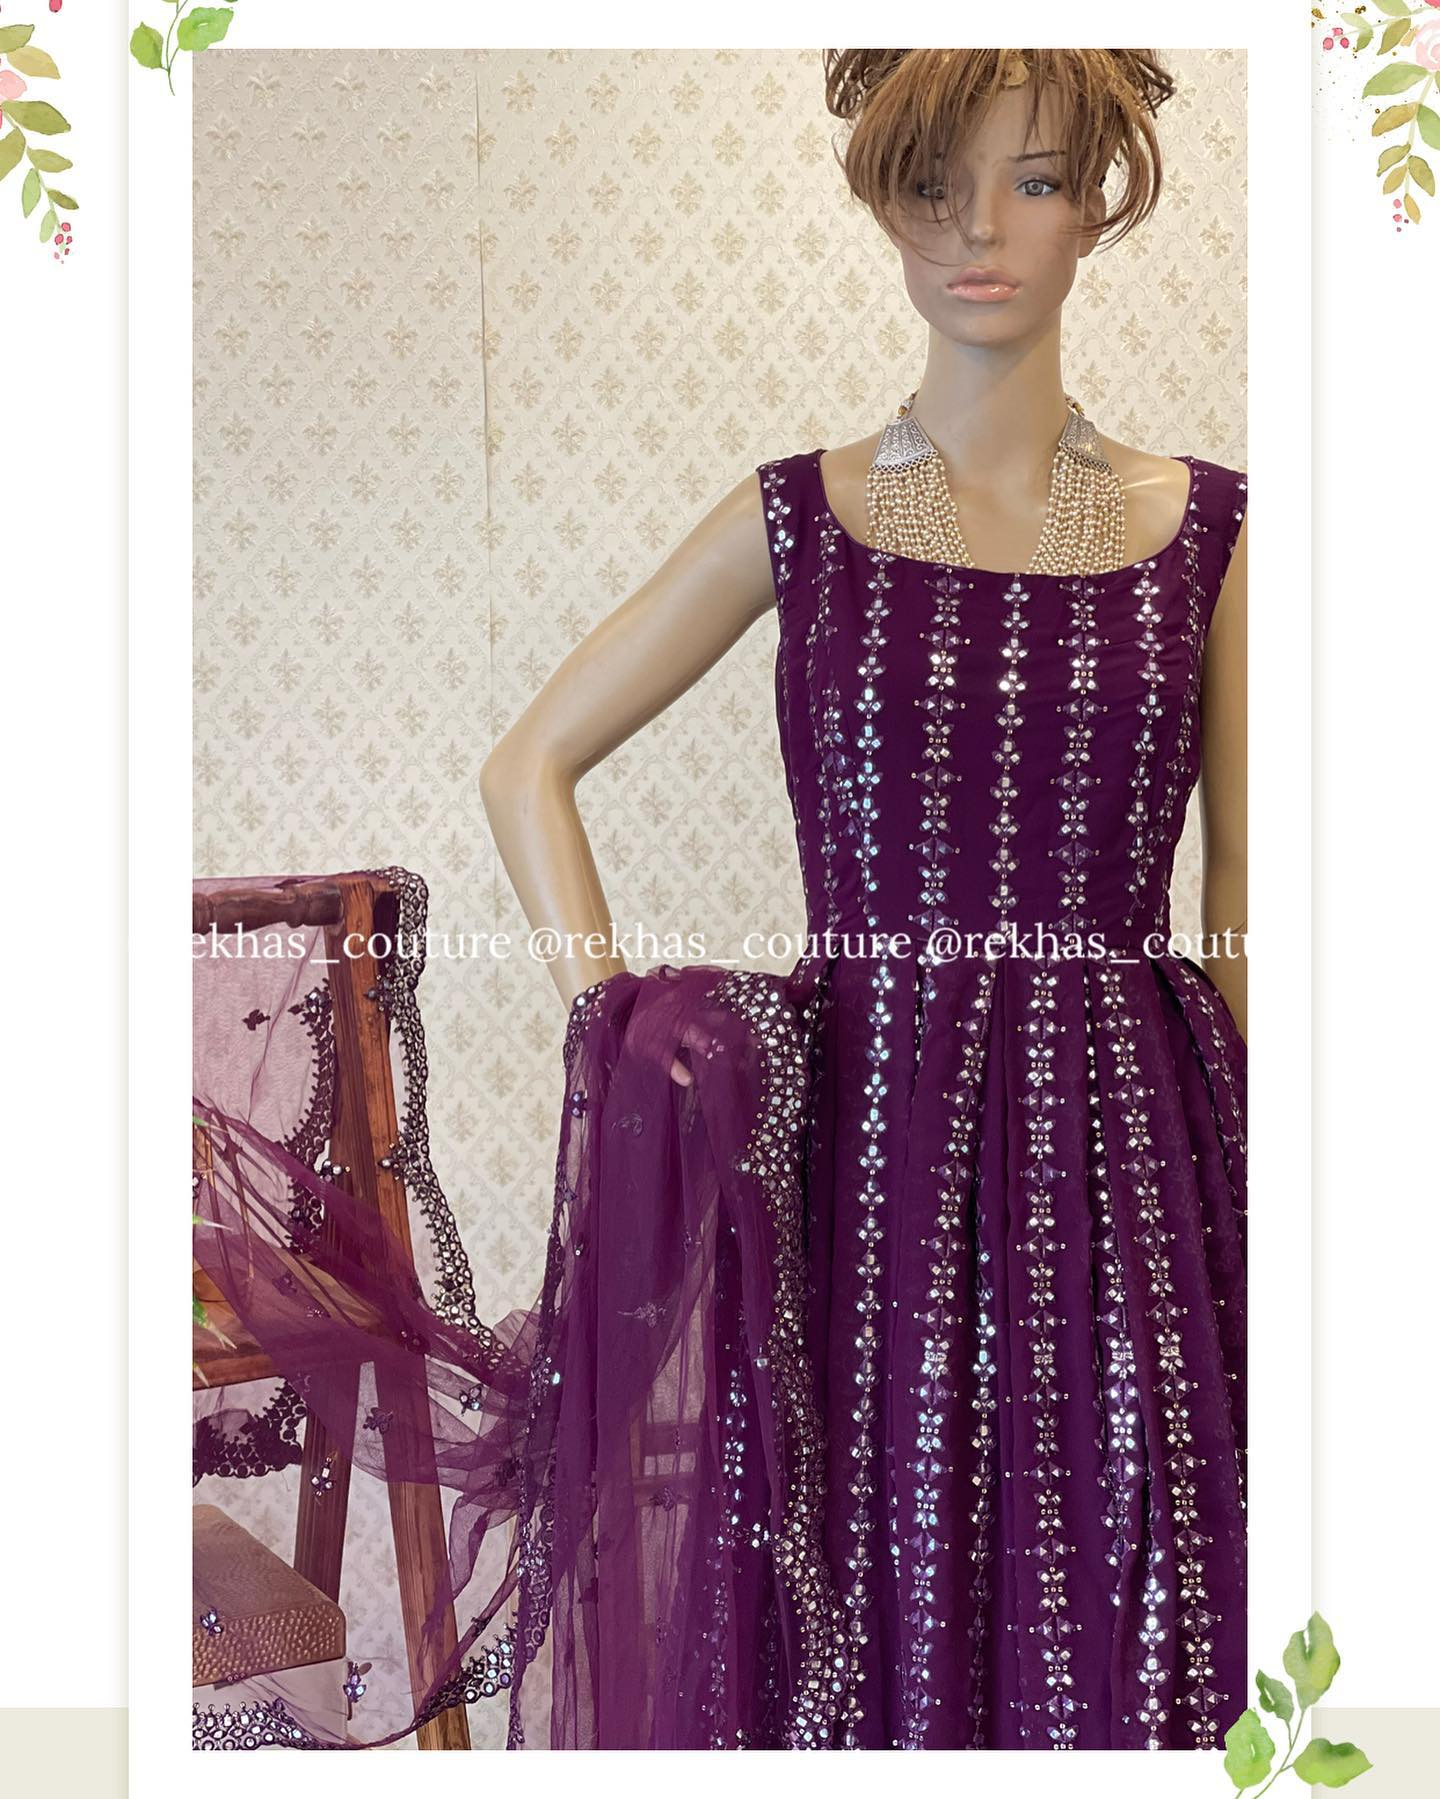 Diwali sparkles on the way! Gorgeous purple color floor length dress with hand embroidery glass bead work and net dupatta.  2021-10-14